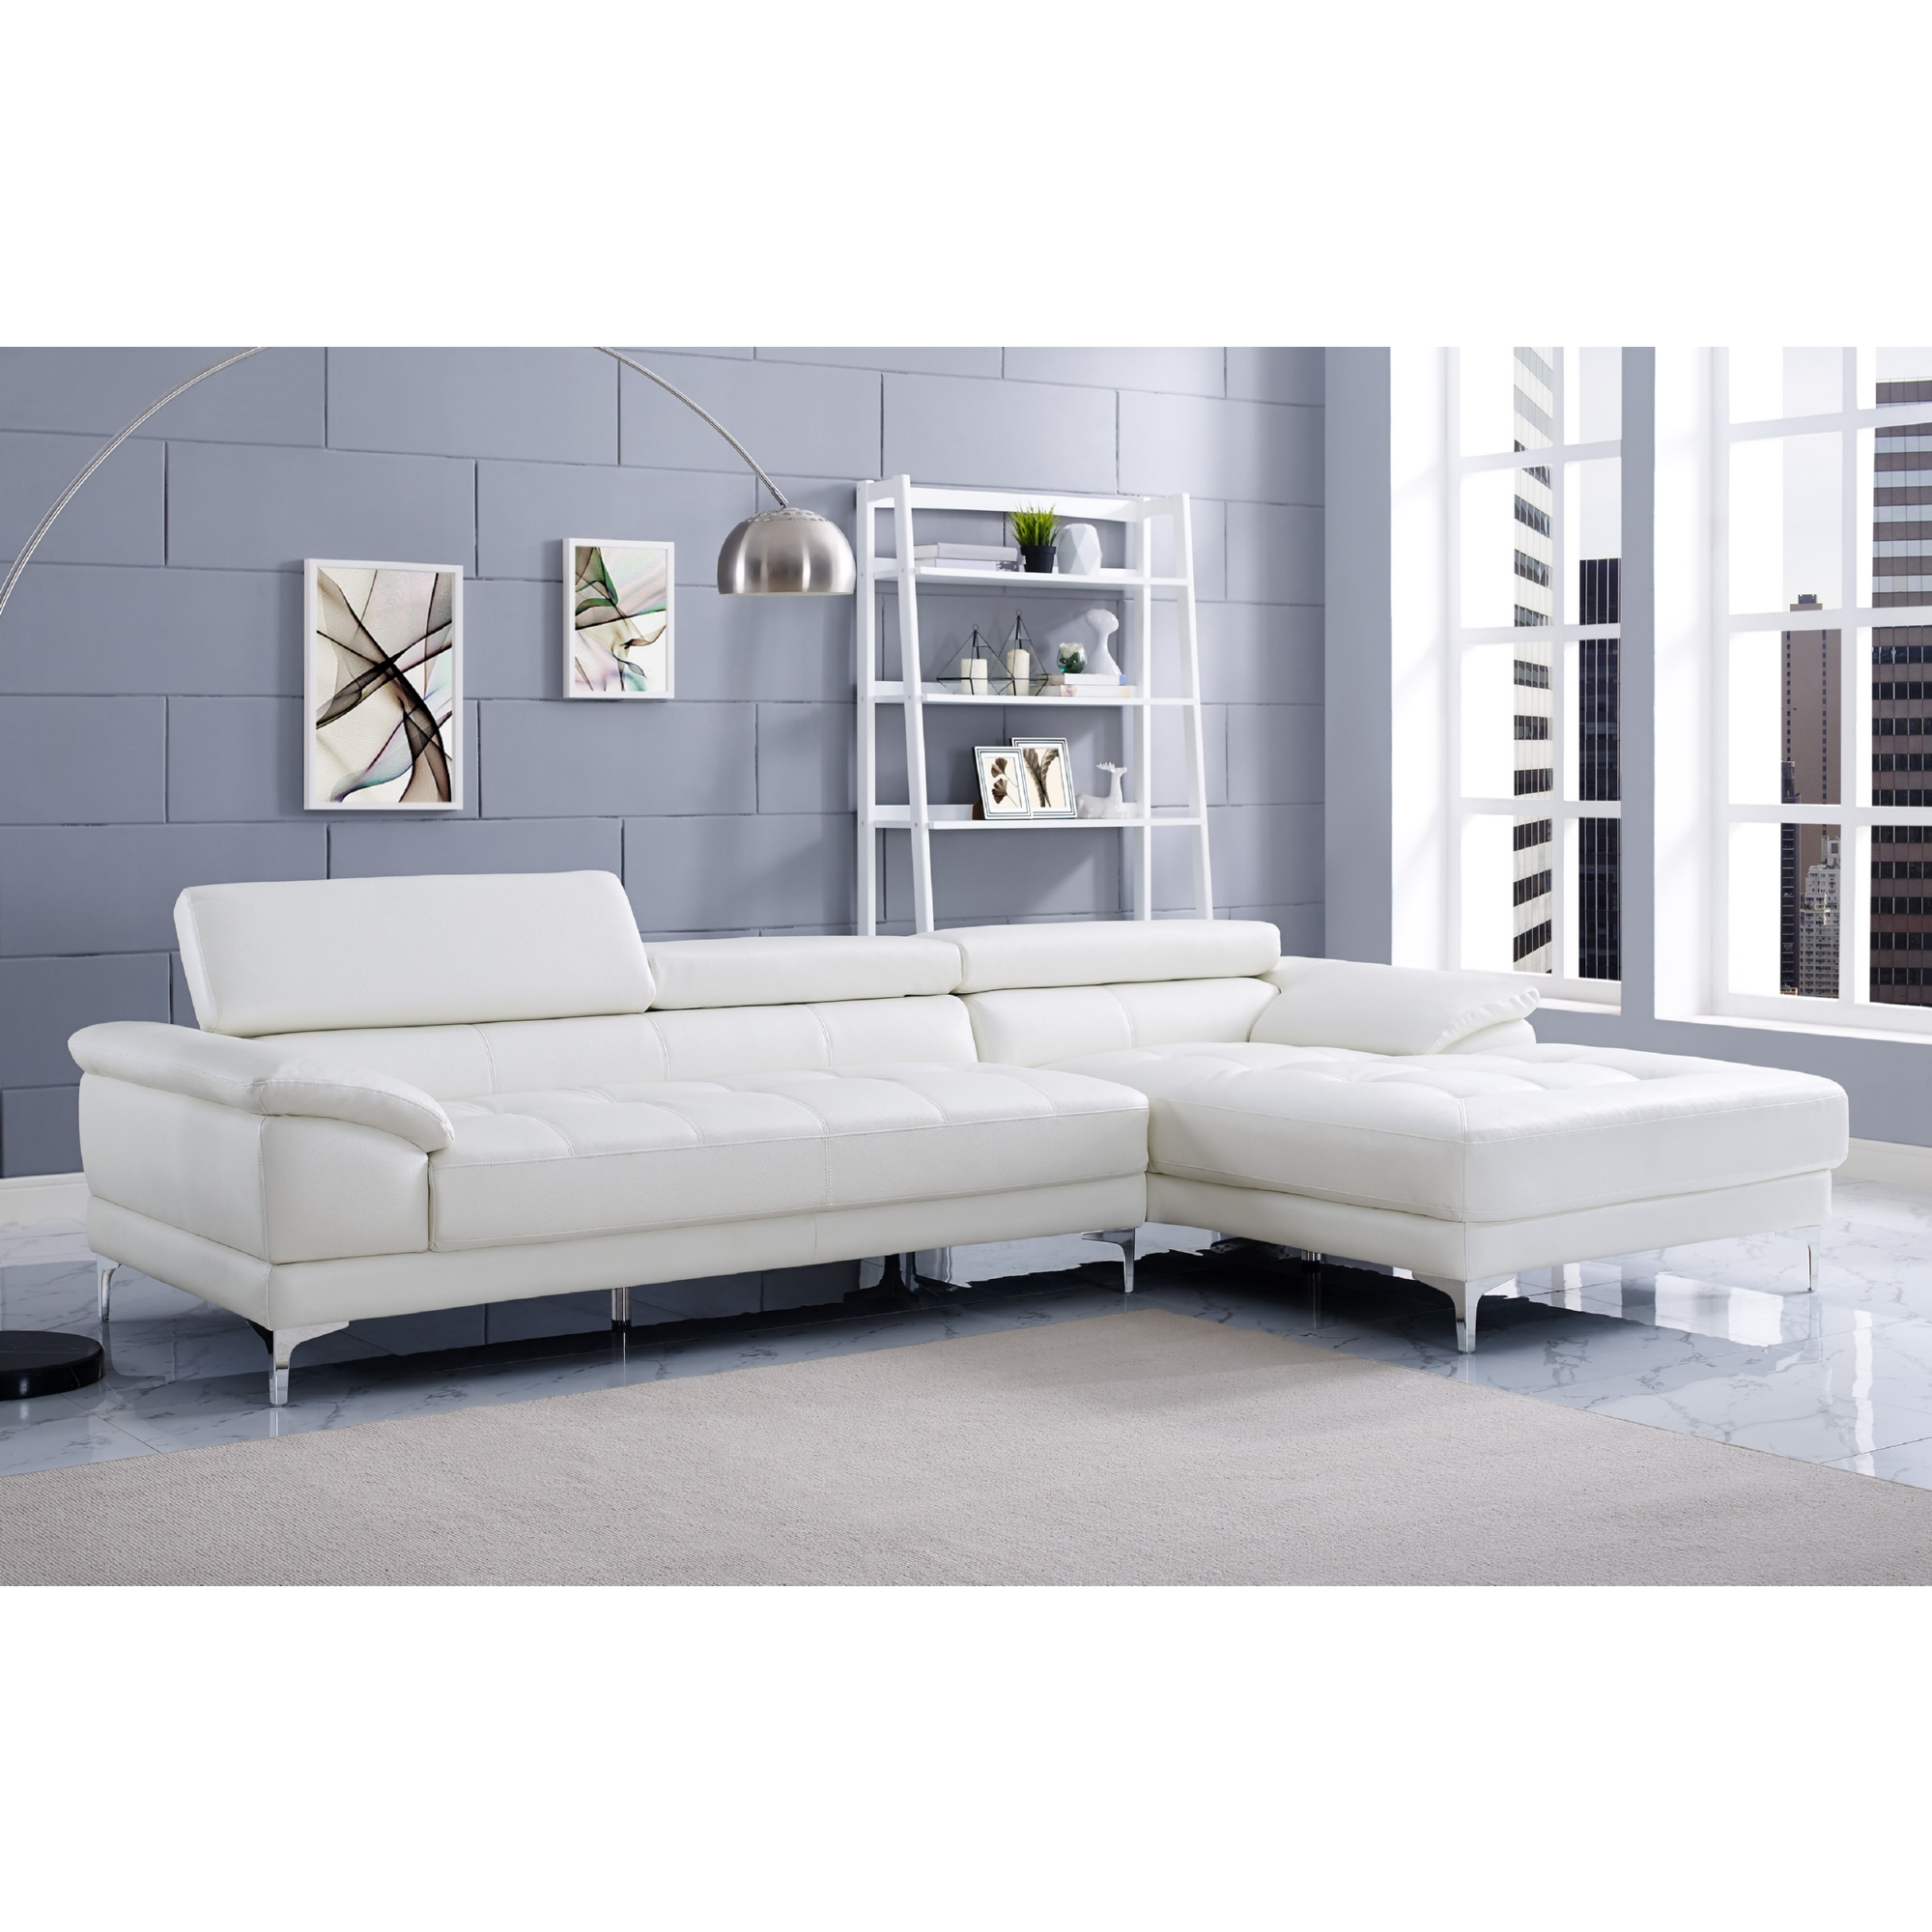 Whiteline Imports SR1342P WHT Monroe Sectional Sofa w Chaise on